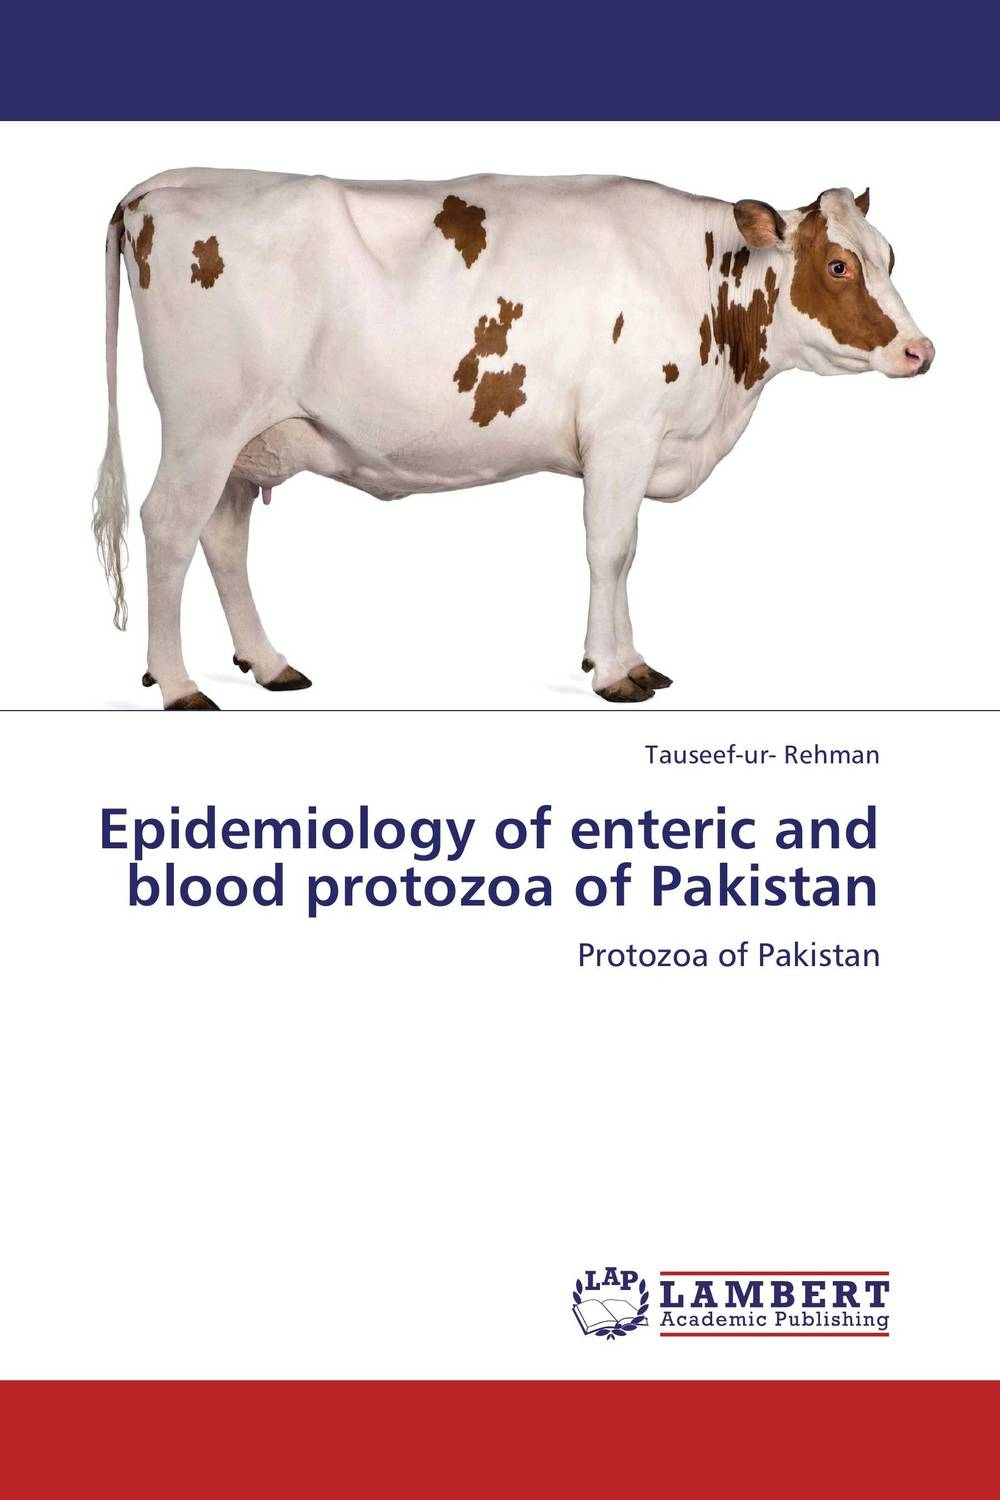 Epidemiology of enteric and blood protozoa of Pakistan parasitic wood